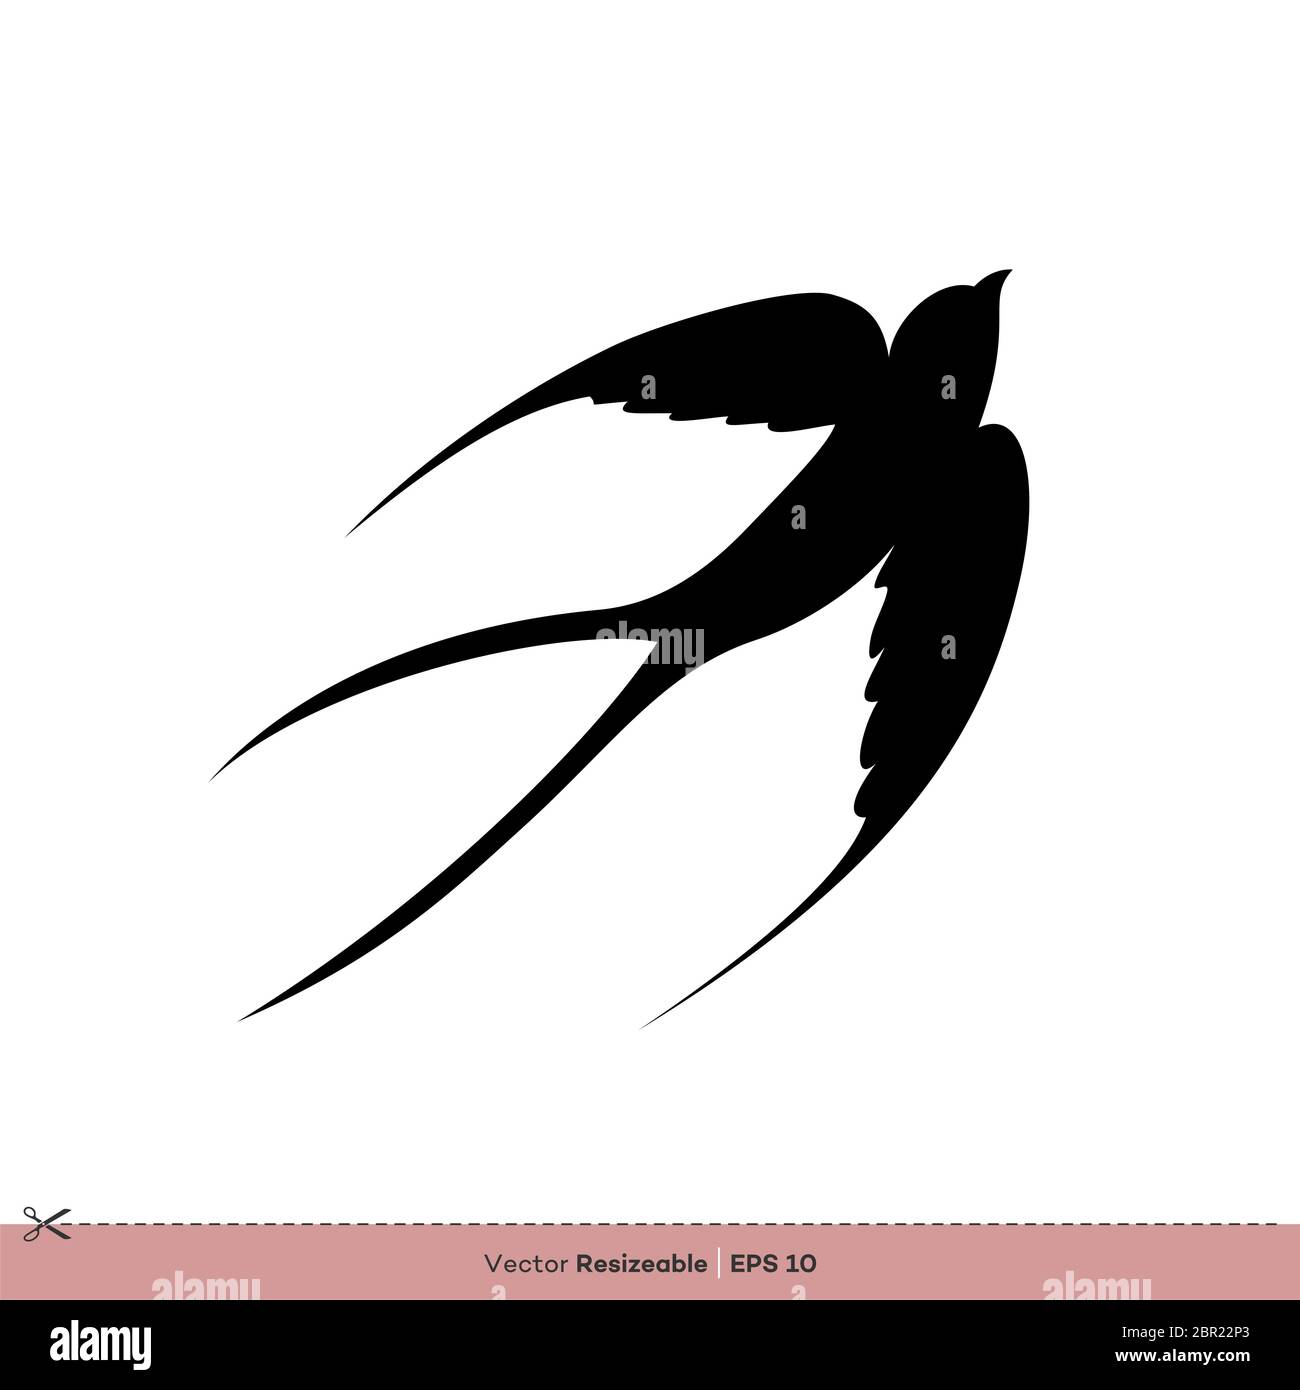 swallow bird silhouette vector logo template illustration design stock photo alamy https www alamy com swallow bird silhouette vector logo template illustration design image358390539 html